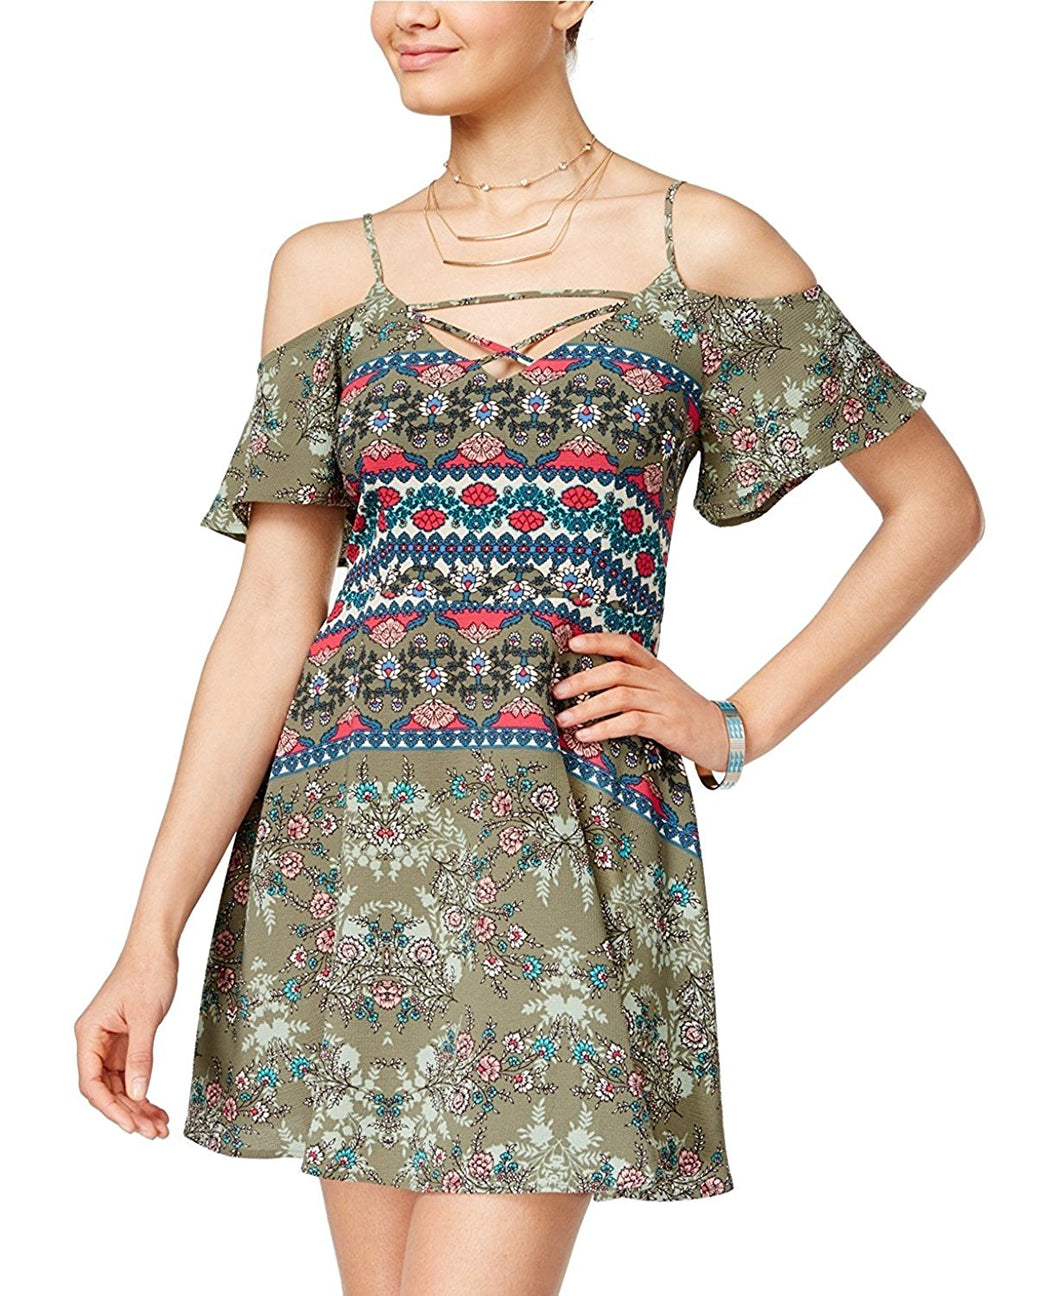 Teeze Me Juniors Cold-Shoulder Fit and Flare Dress Green Multi